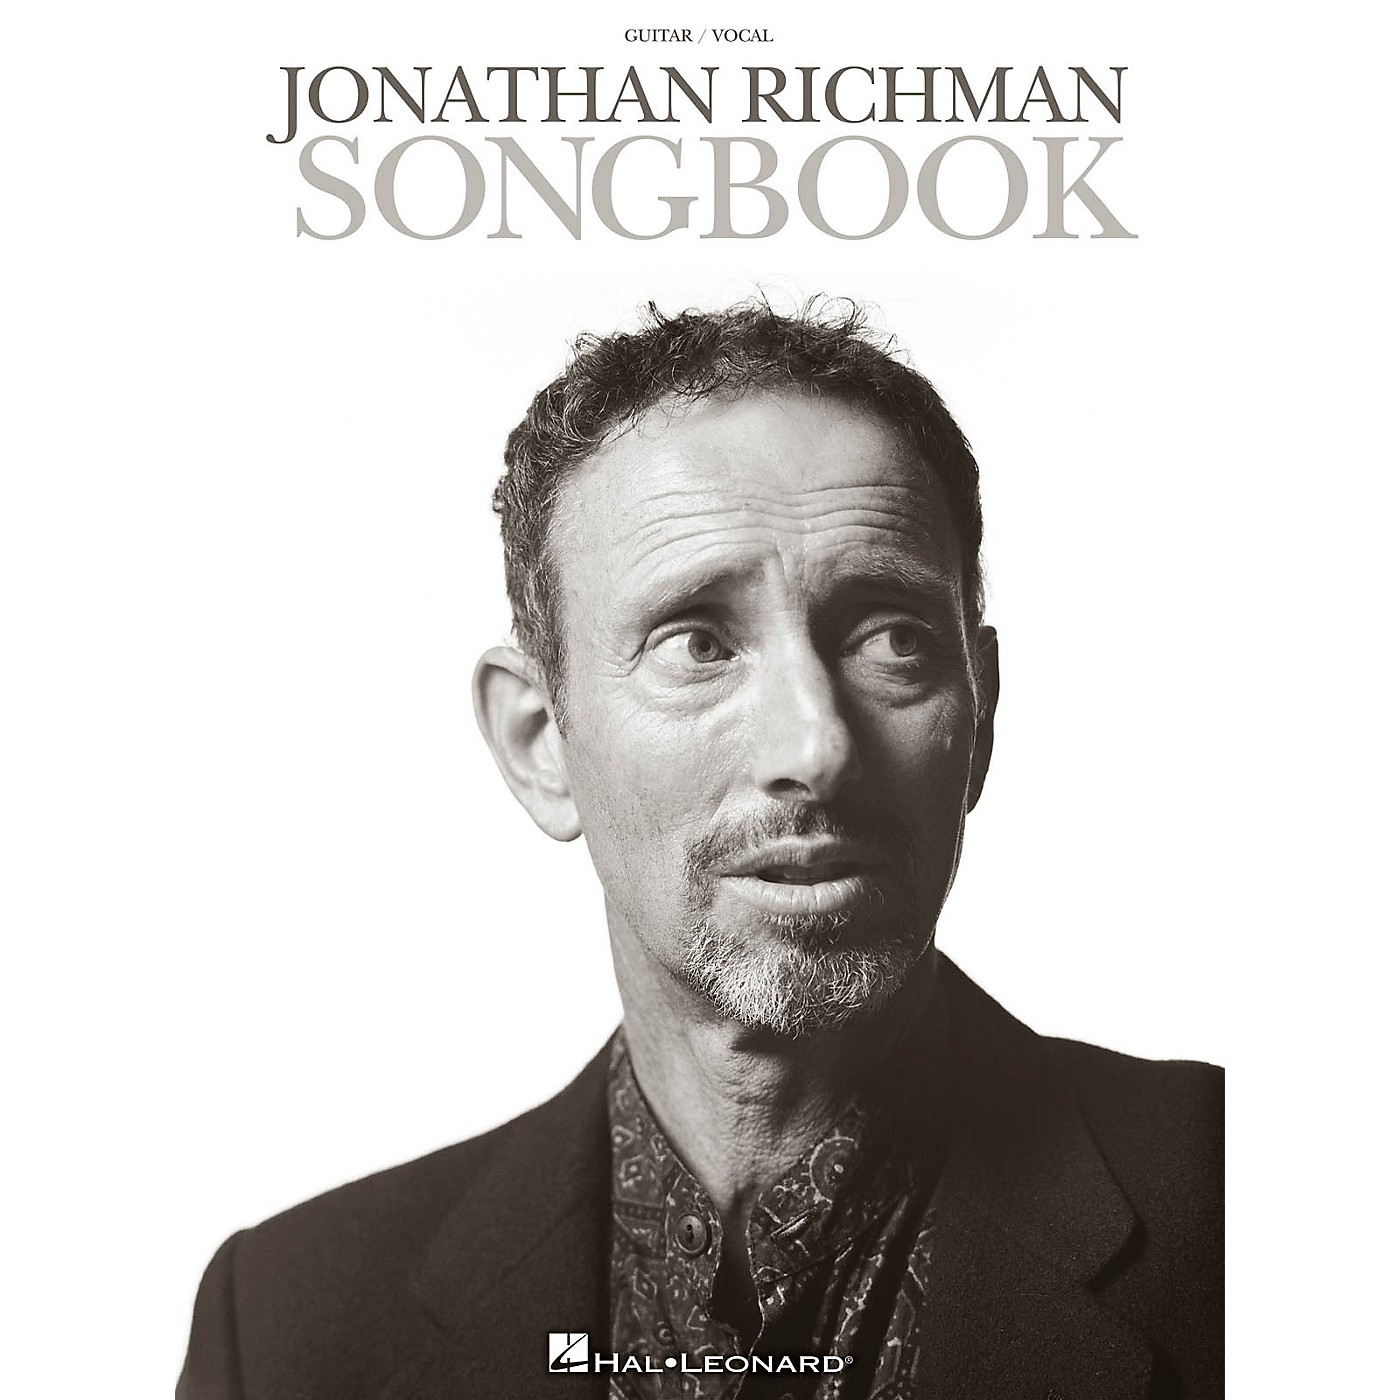 Hal Leonard Jonathan Richman Songbook Guitar Collection Series Softcover Performed by Jonathan Richman thumbnail